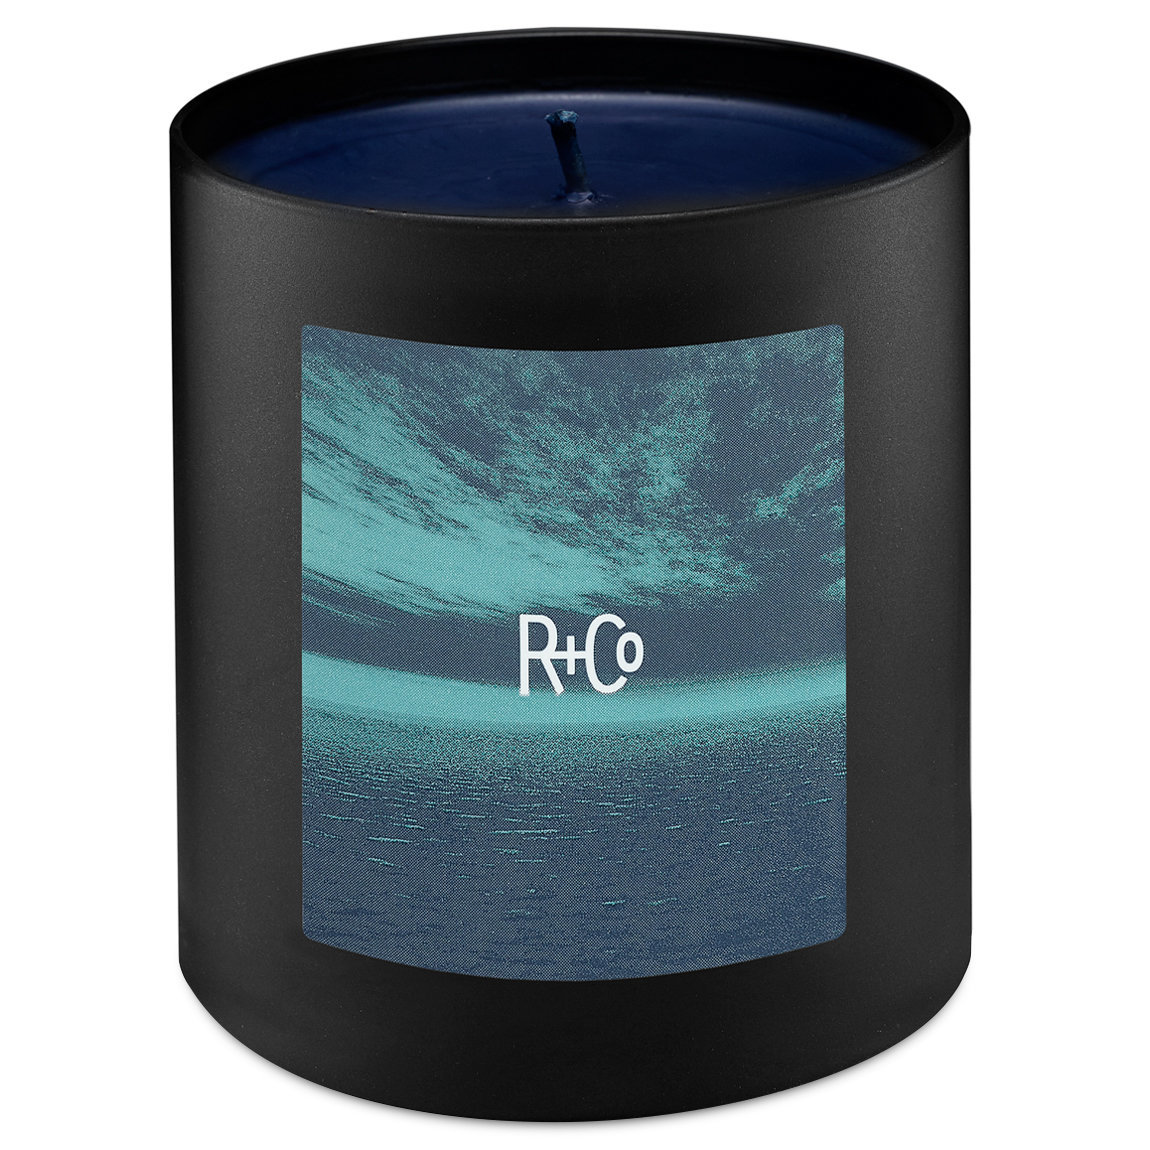 R+Co Dark Waves Candle product swatch.